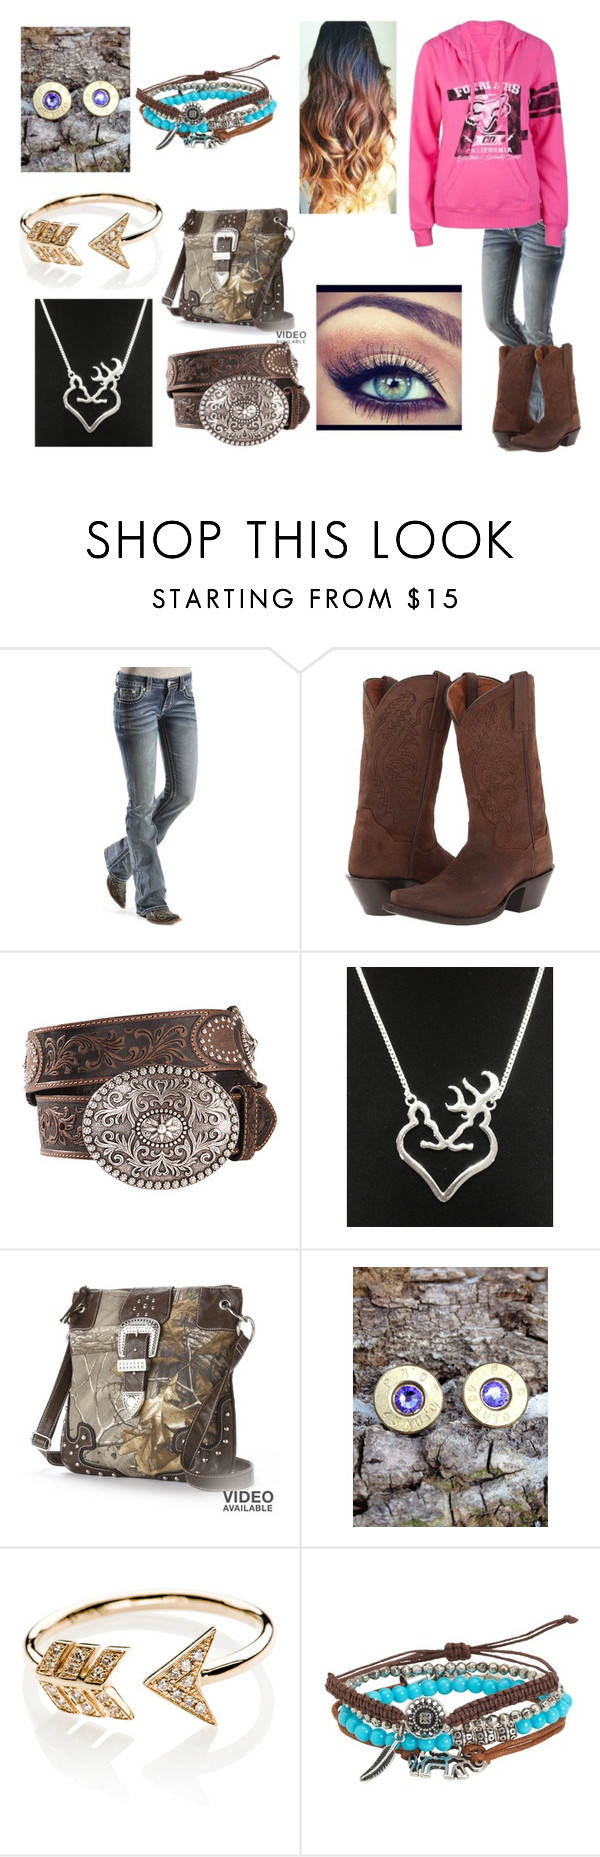 """Untitled #710"" by taylor-loomis ❤ liked on Polyvore featuring Miss Me, Dan Post, Realtree, Bullet, EF Collection and Aéropostale"